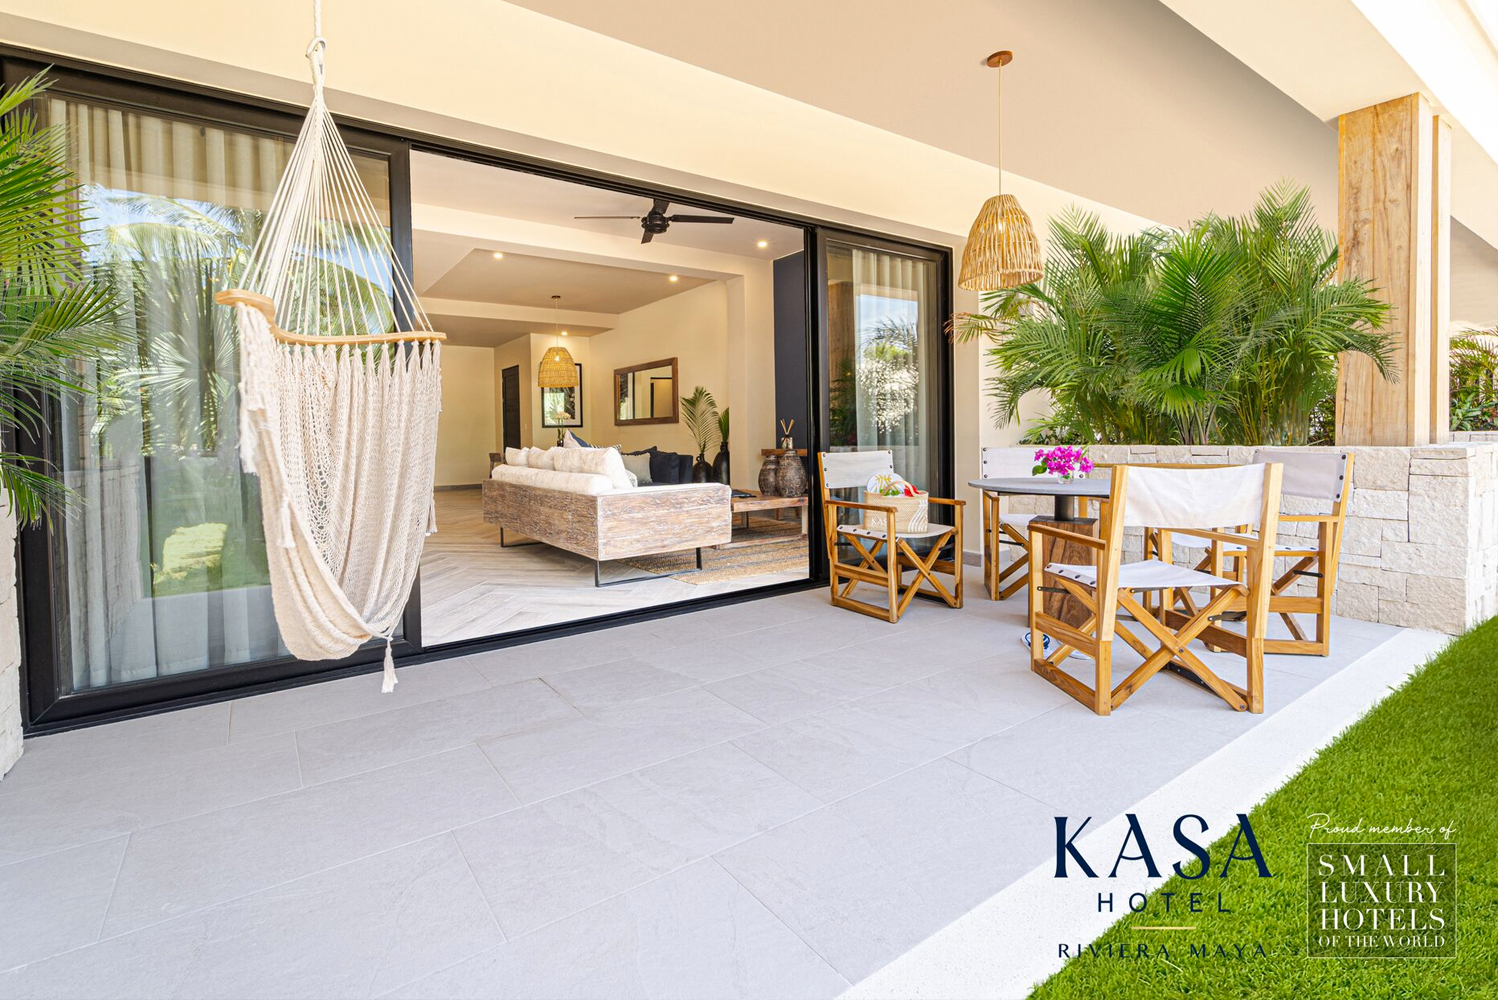 Involved in the design of the property is the local Kasa group.